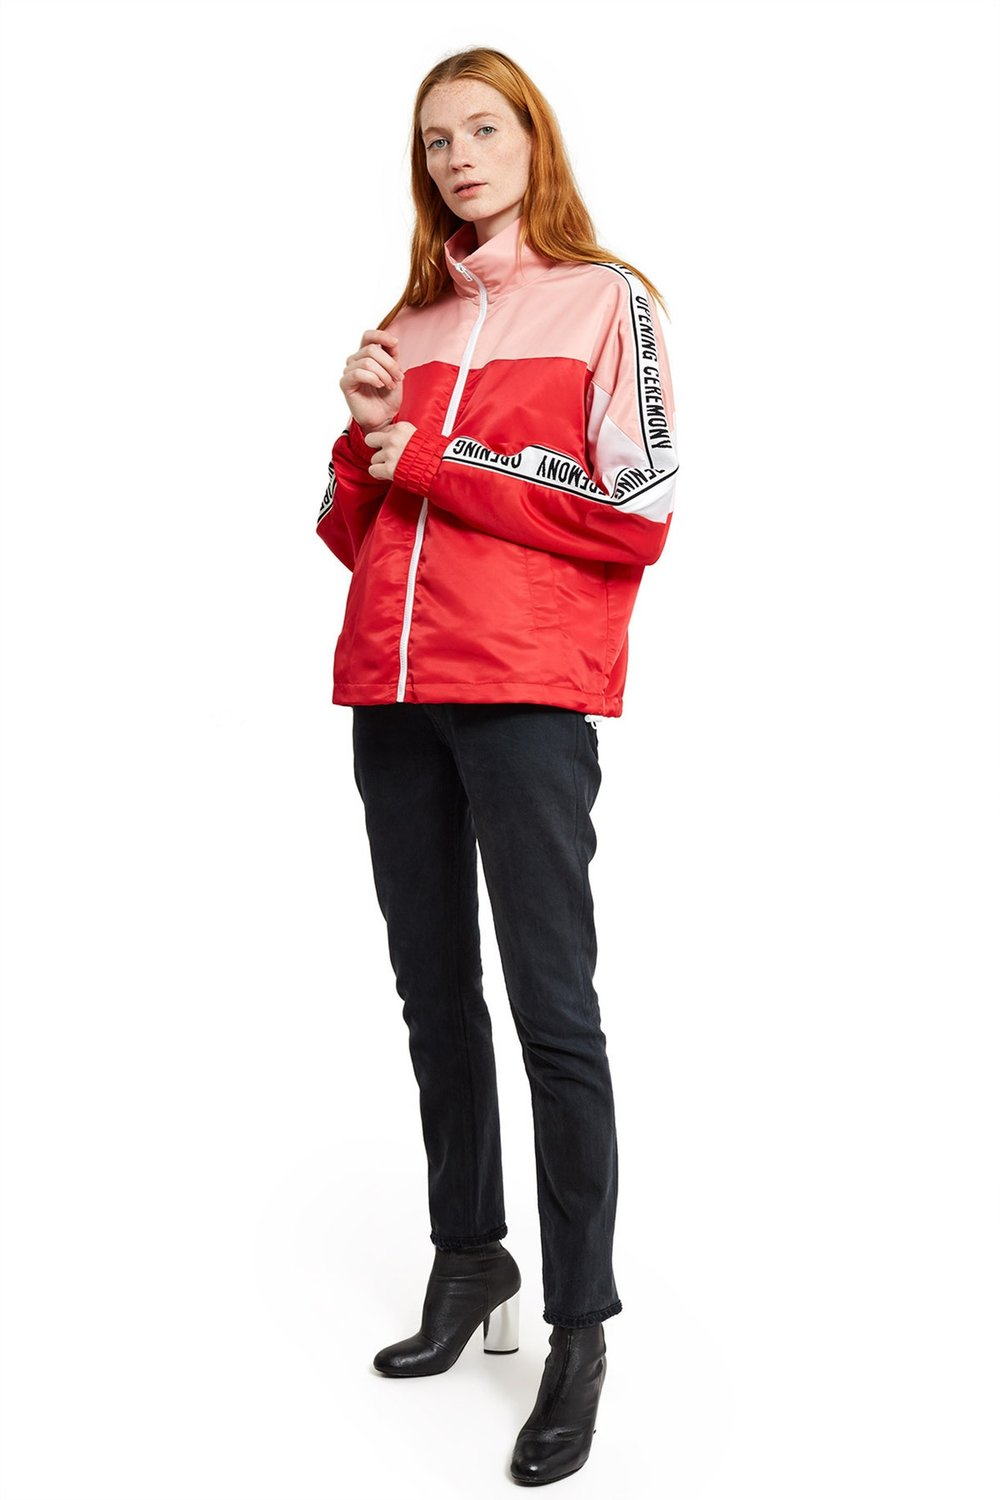 CNK-Opening-Ceremony-Track-Jacket.jpg